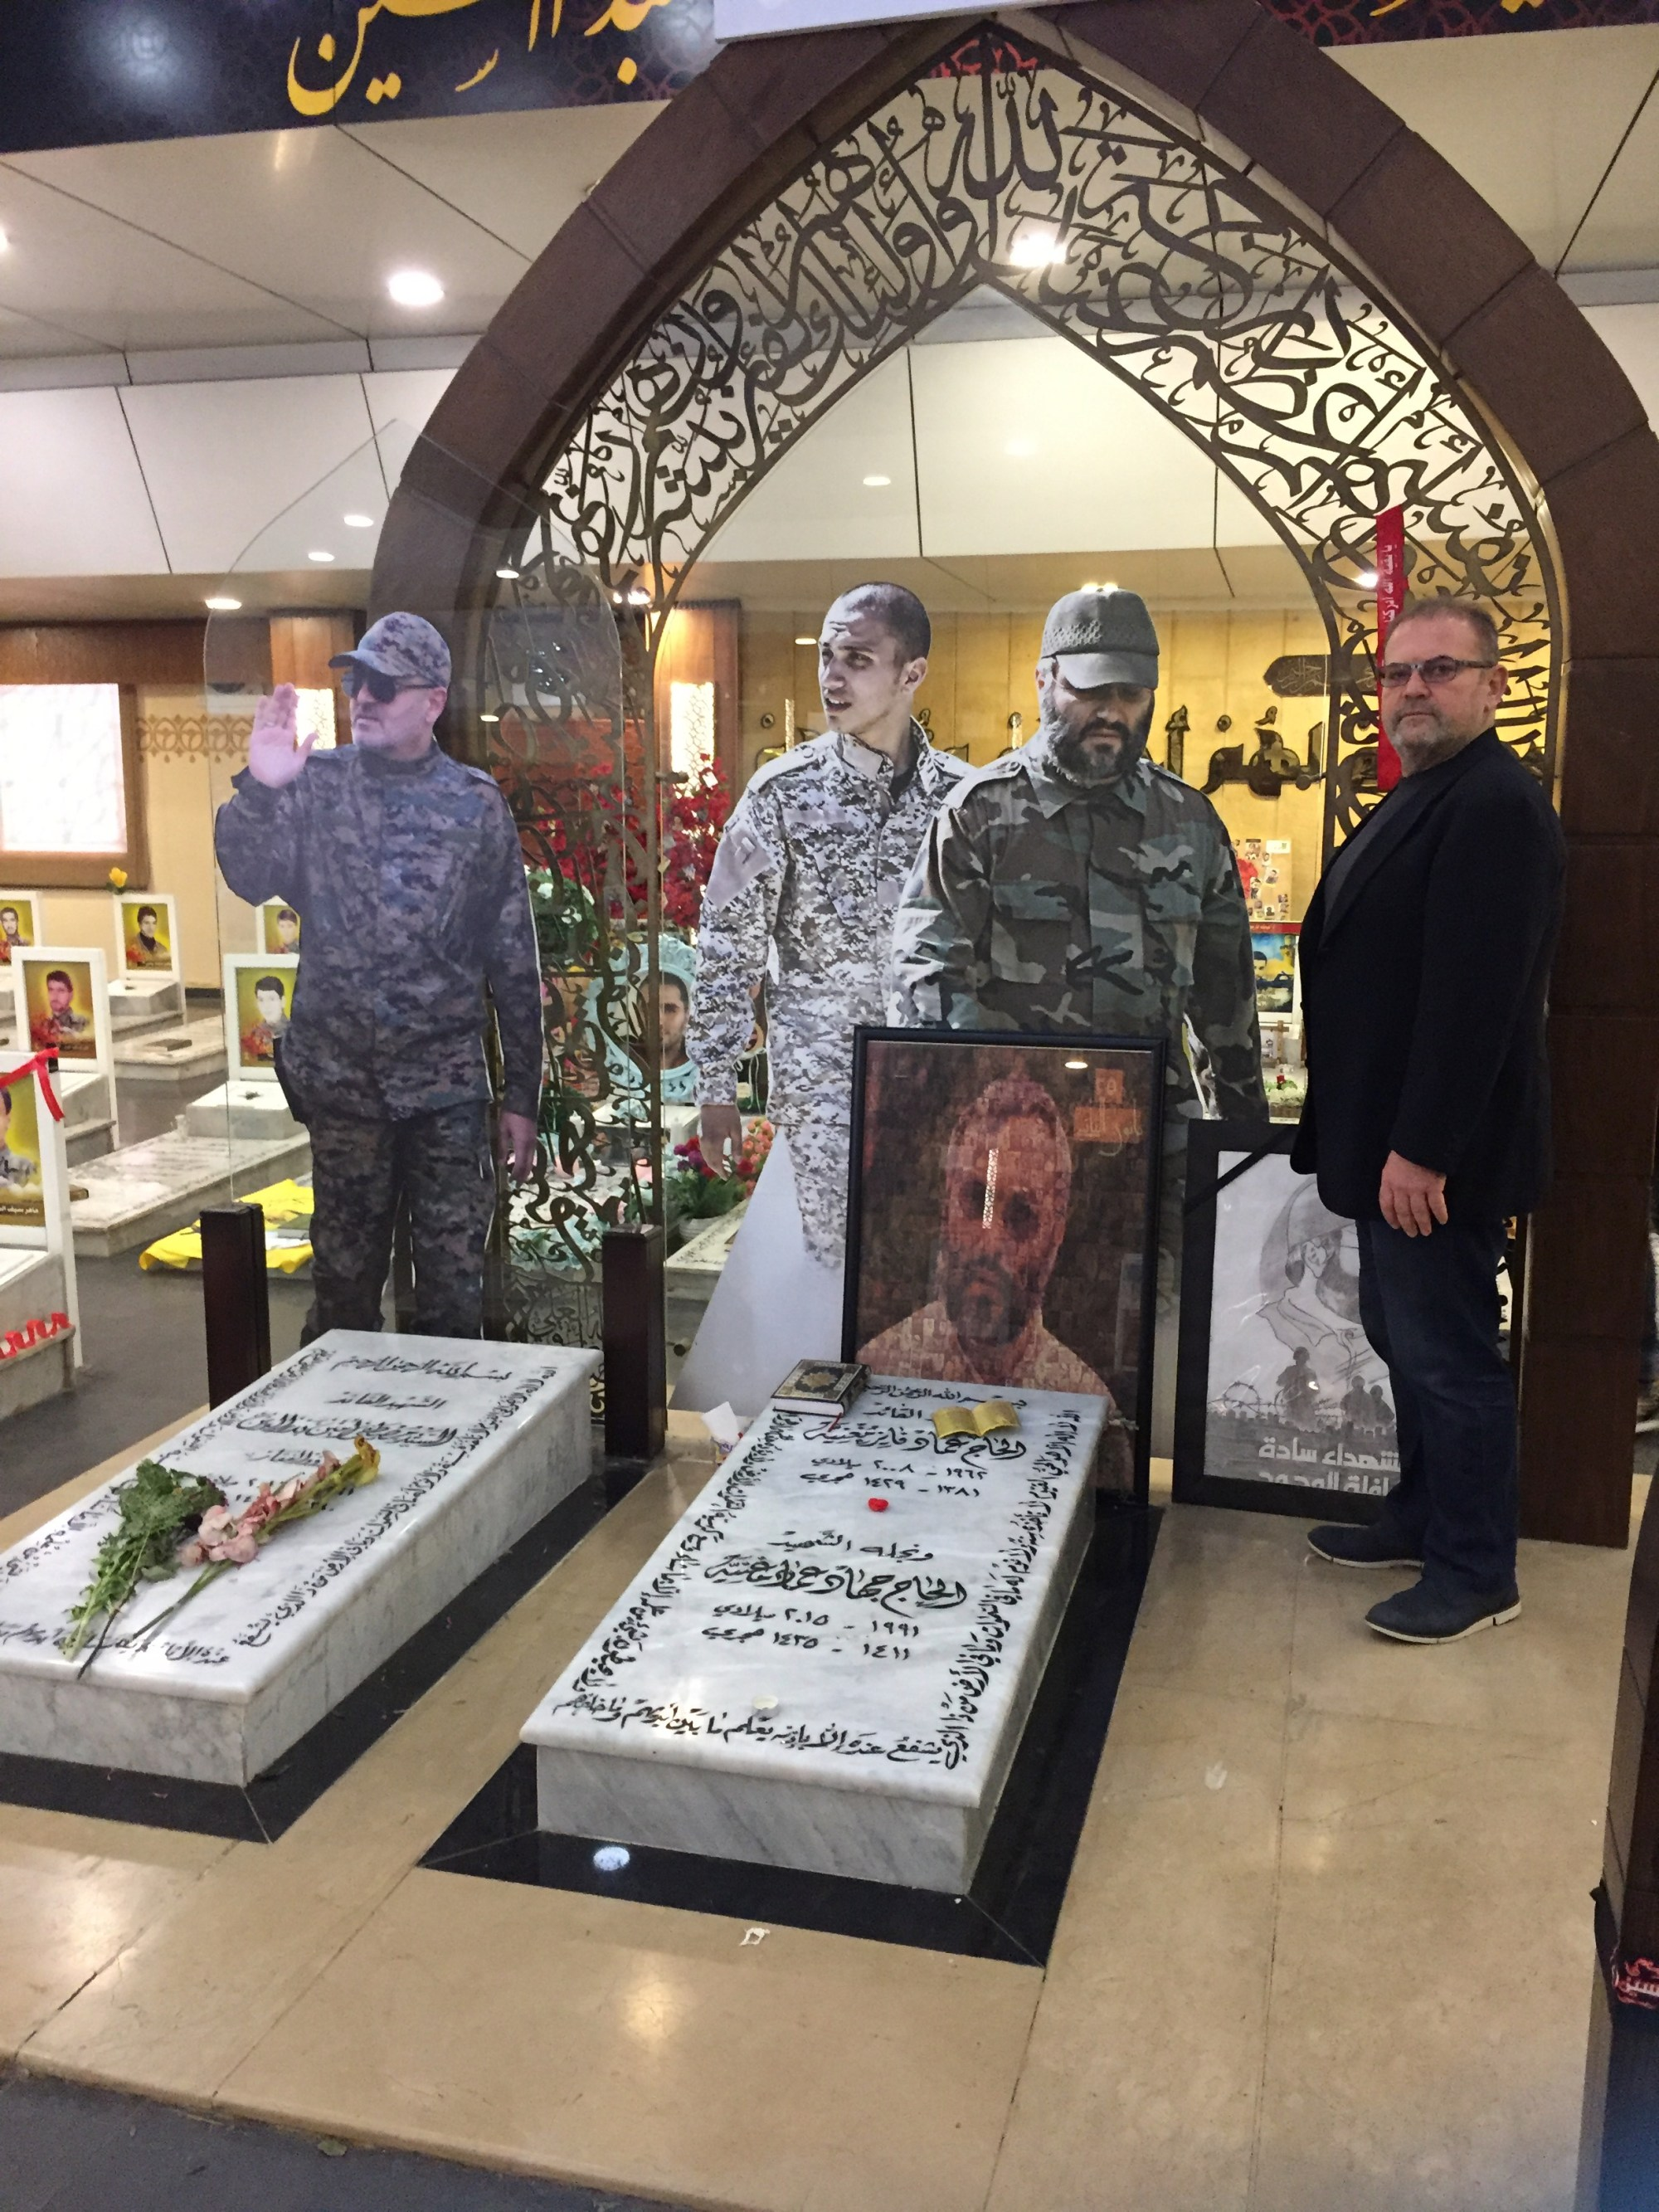 Tomb of Imad Mughniyeh and Mustafa Badreddine in Beirut, Lebanon.